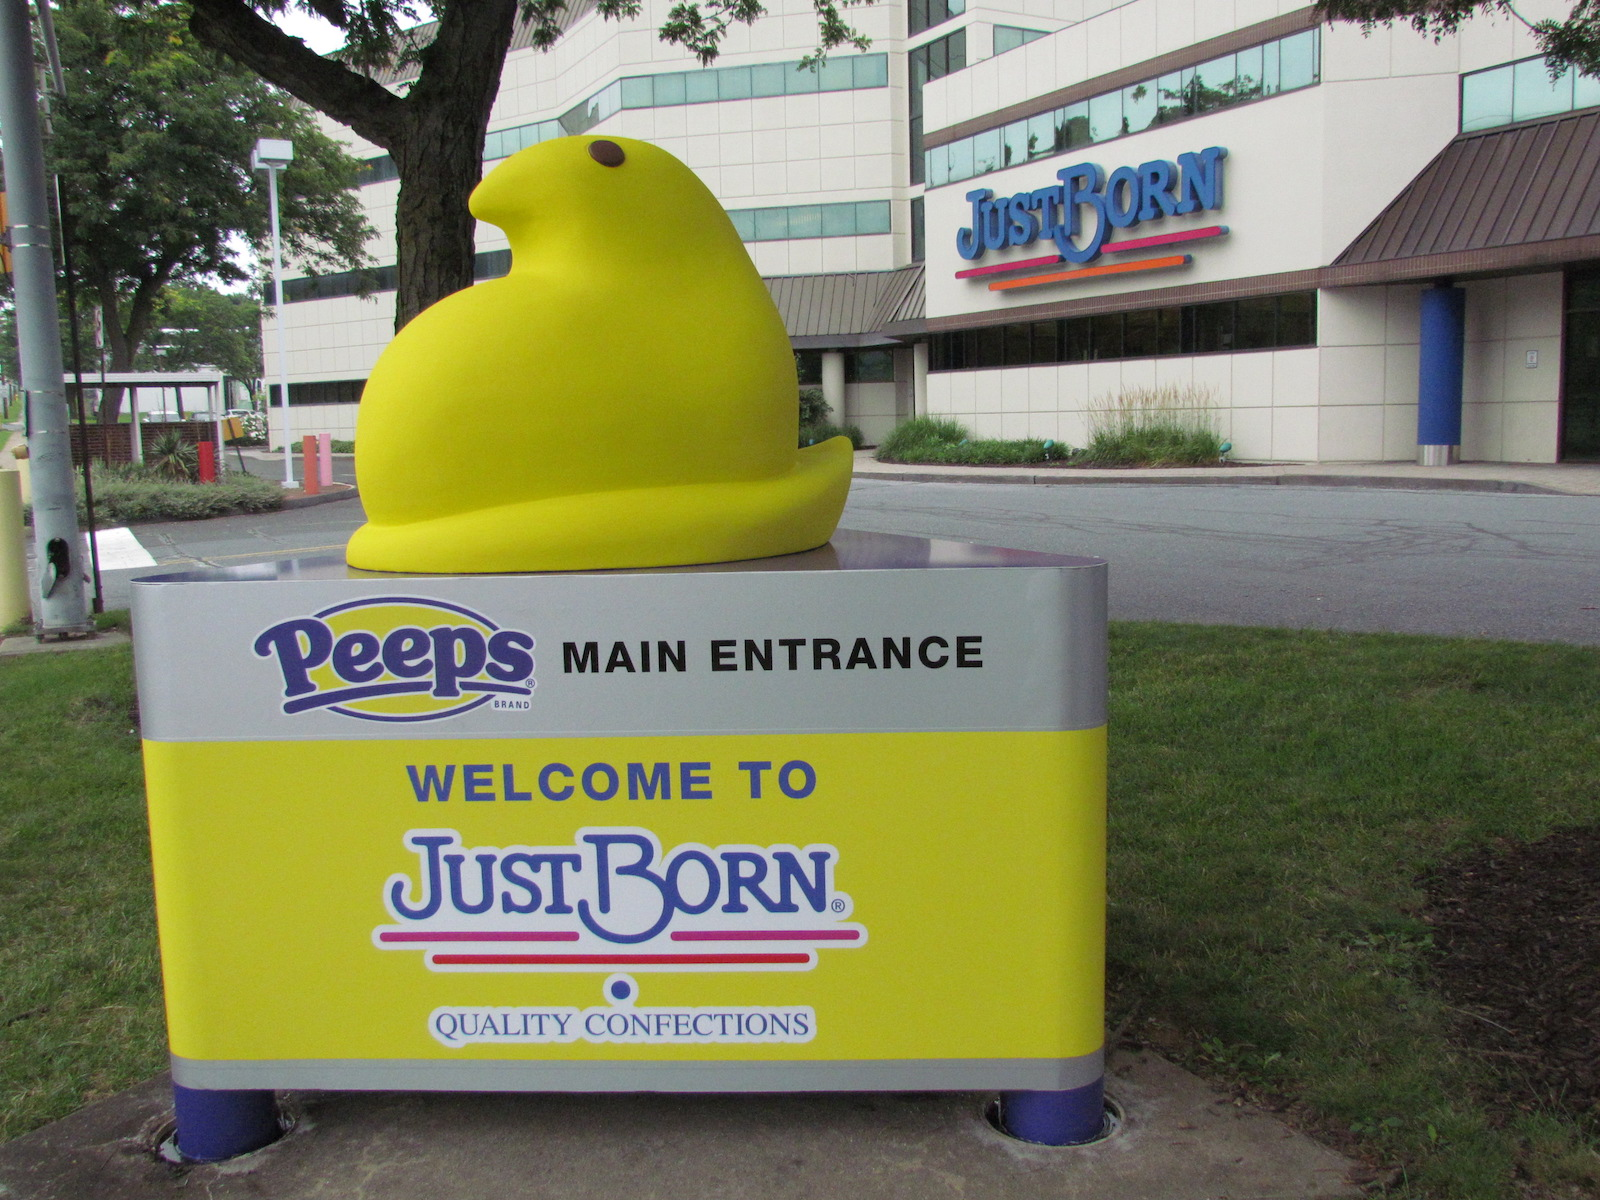 Peeps Offers First-Ever Factory Tour to the Public — Here's How to Get Inside